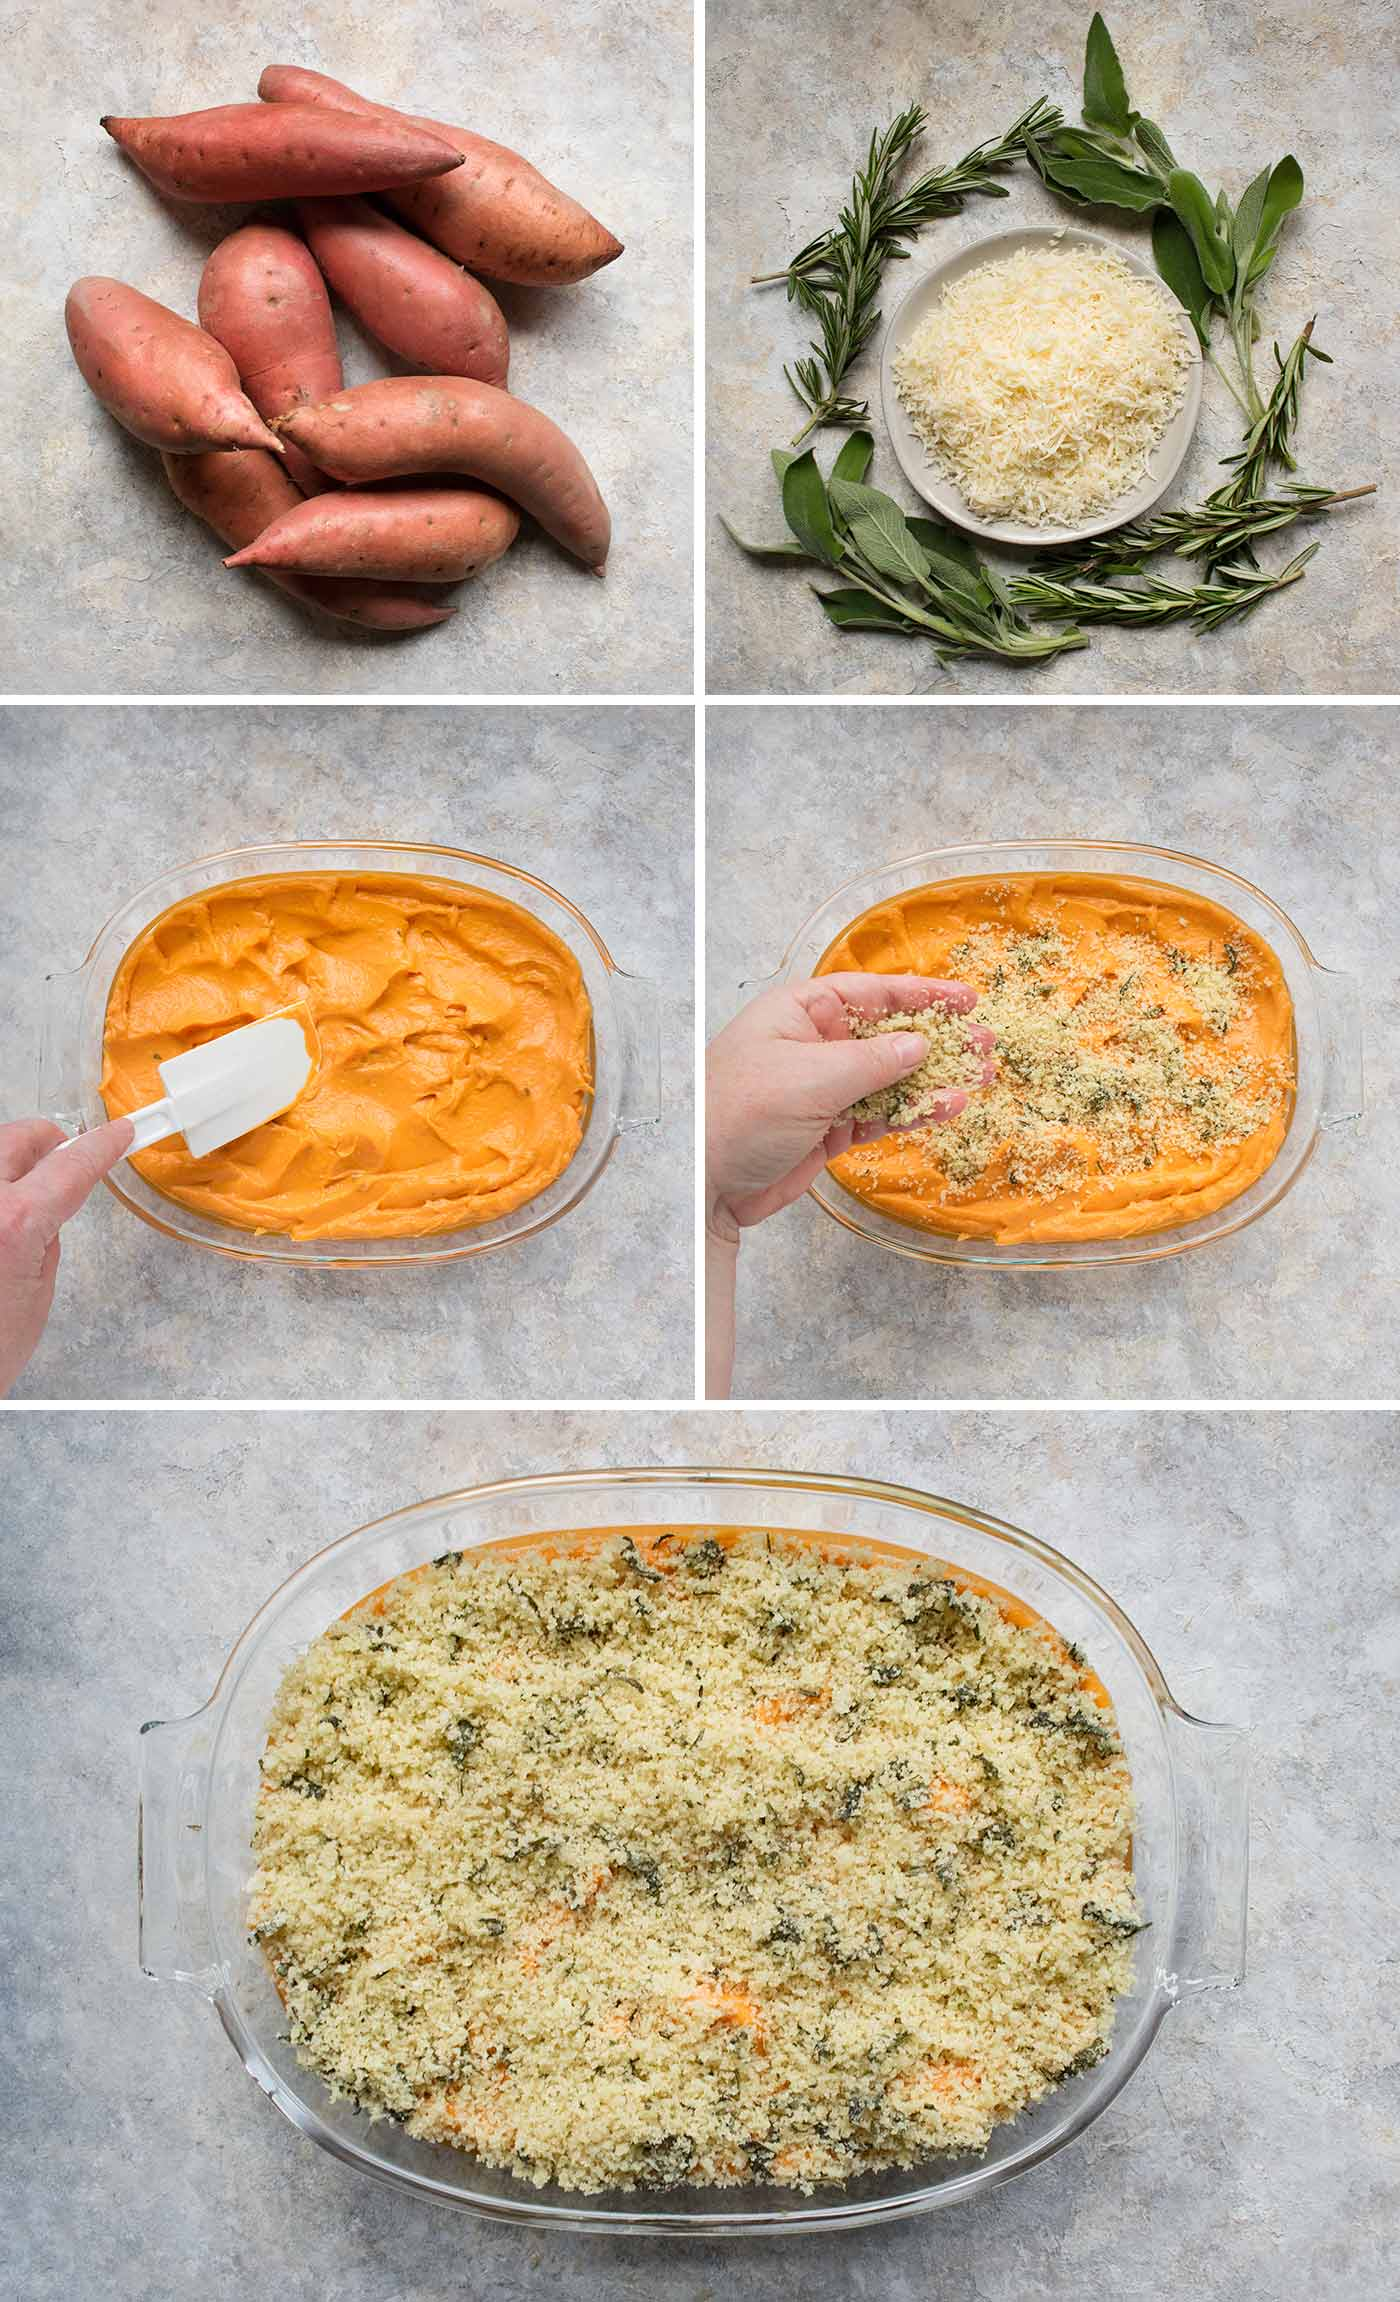 Steps for making Savory Sweet Potato Casserole